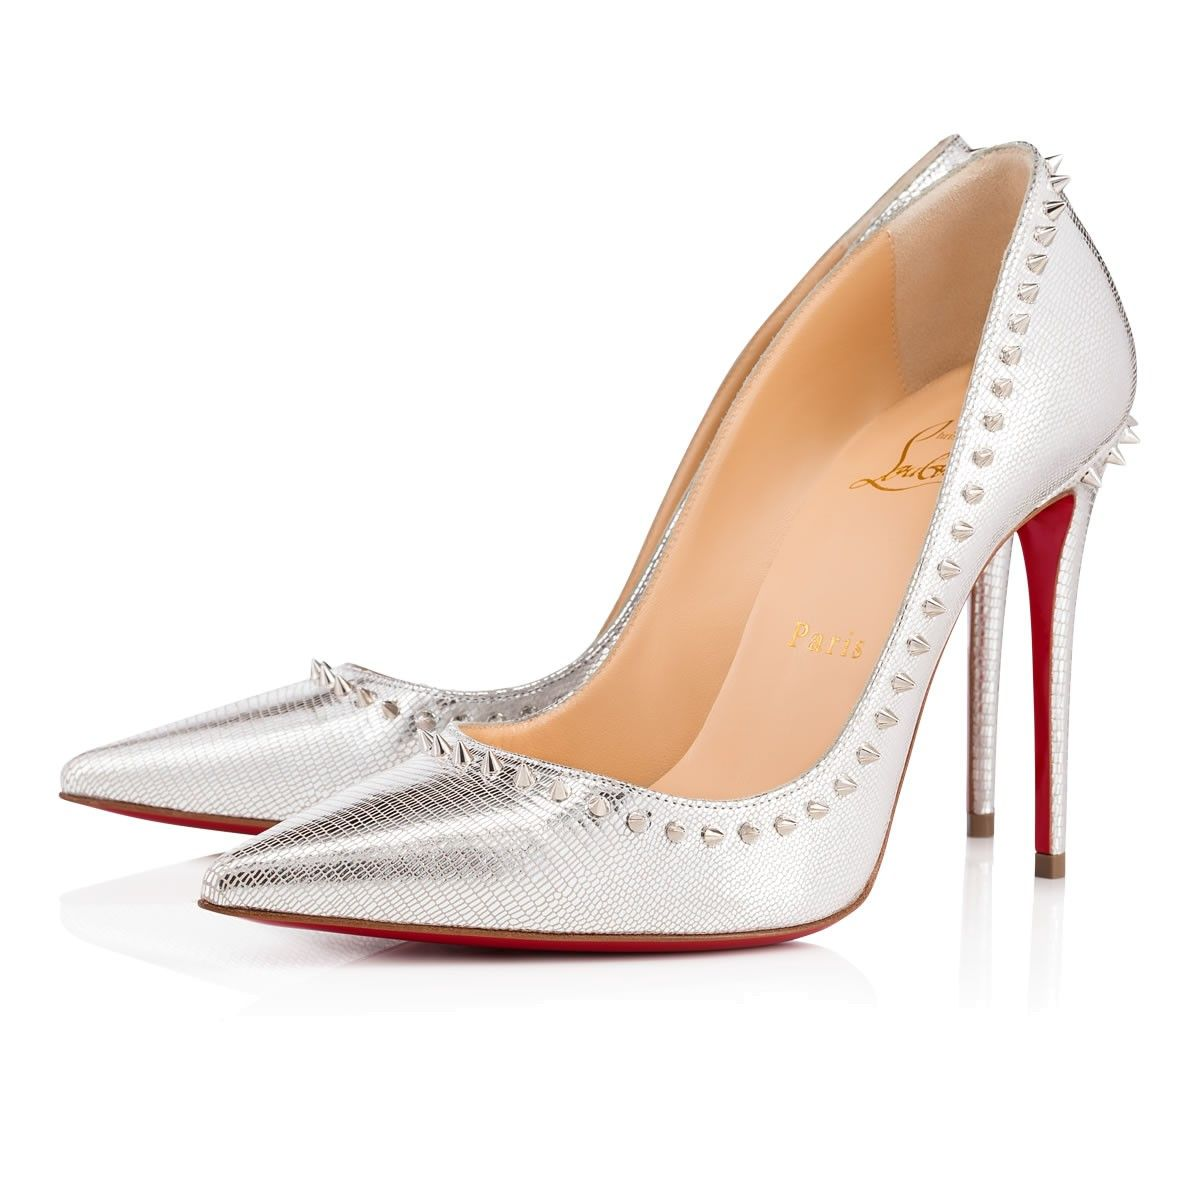 6ba46175f0b CHRISTIAN LOUBOUTIN . #christianlouboutin #shoes # | Christian ...